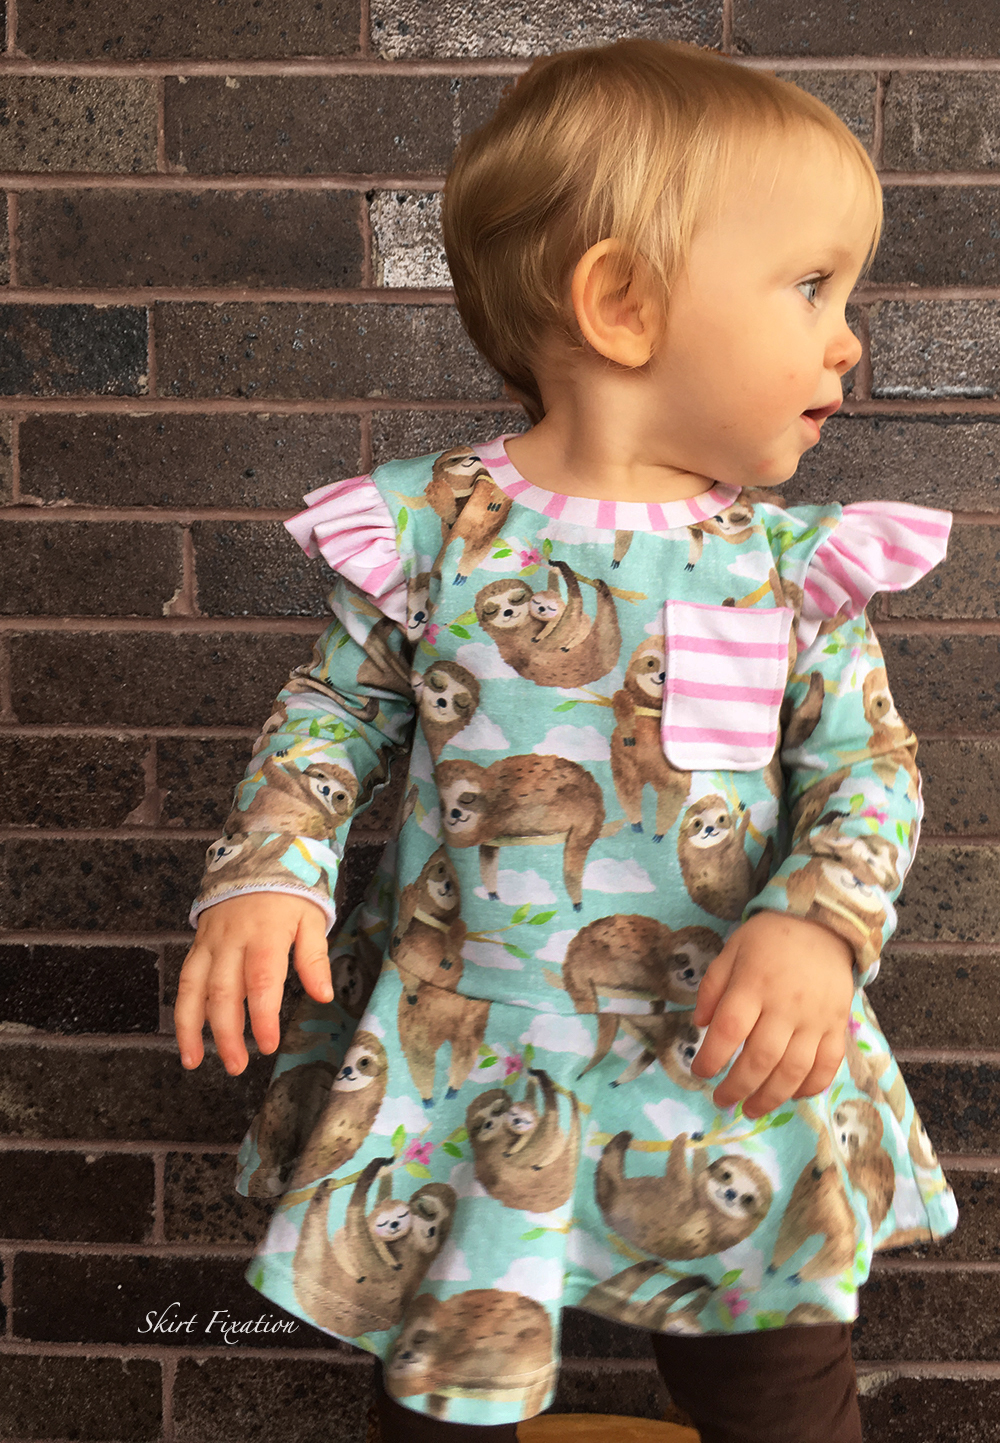 Sloth Peplum sewn for a baby by Skirt Fixation